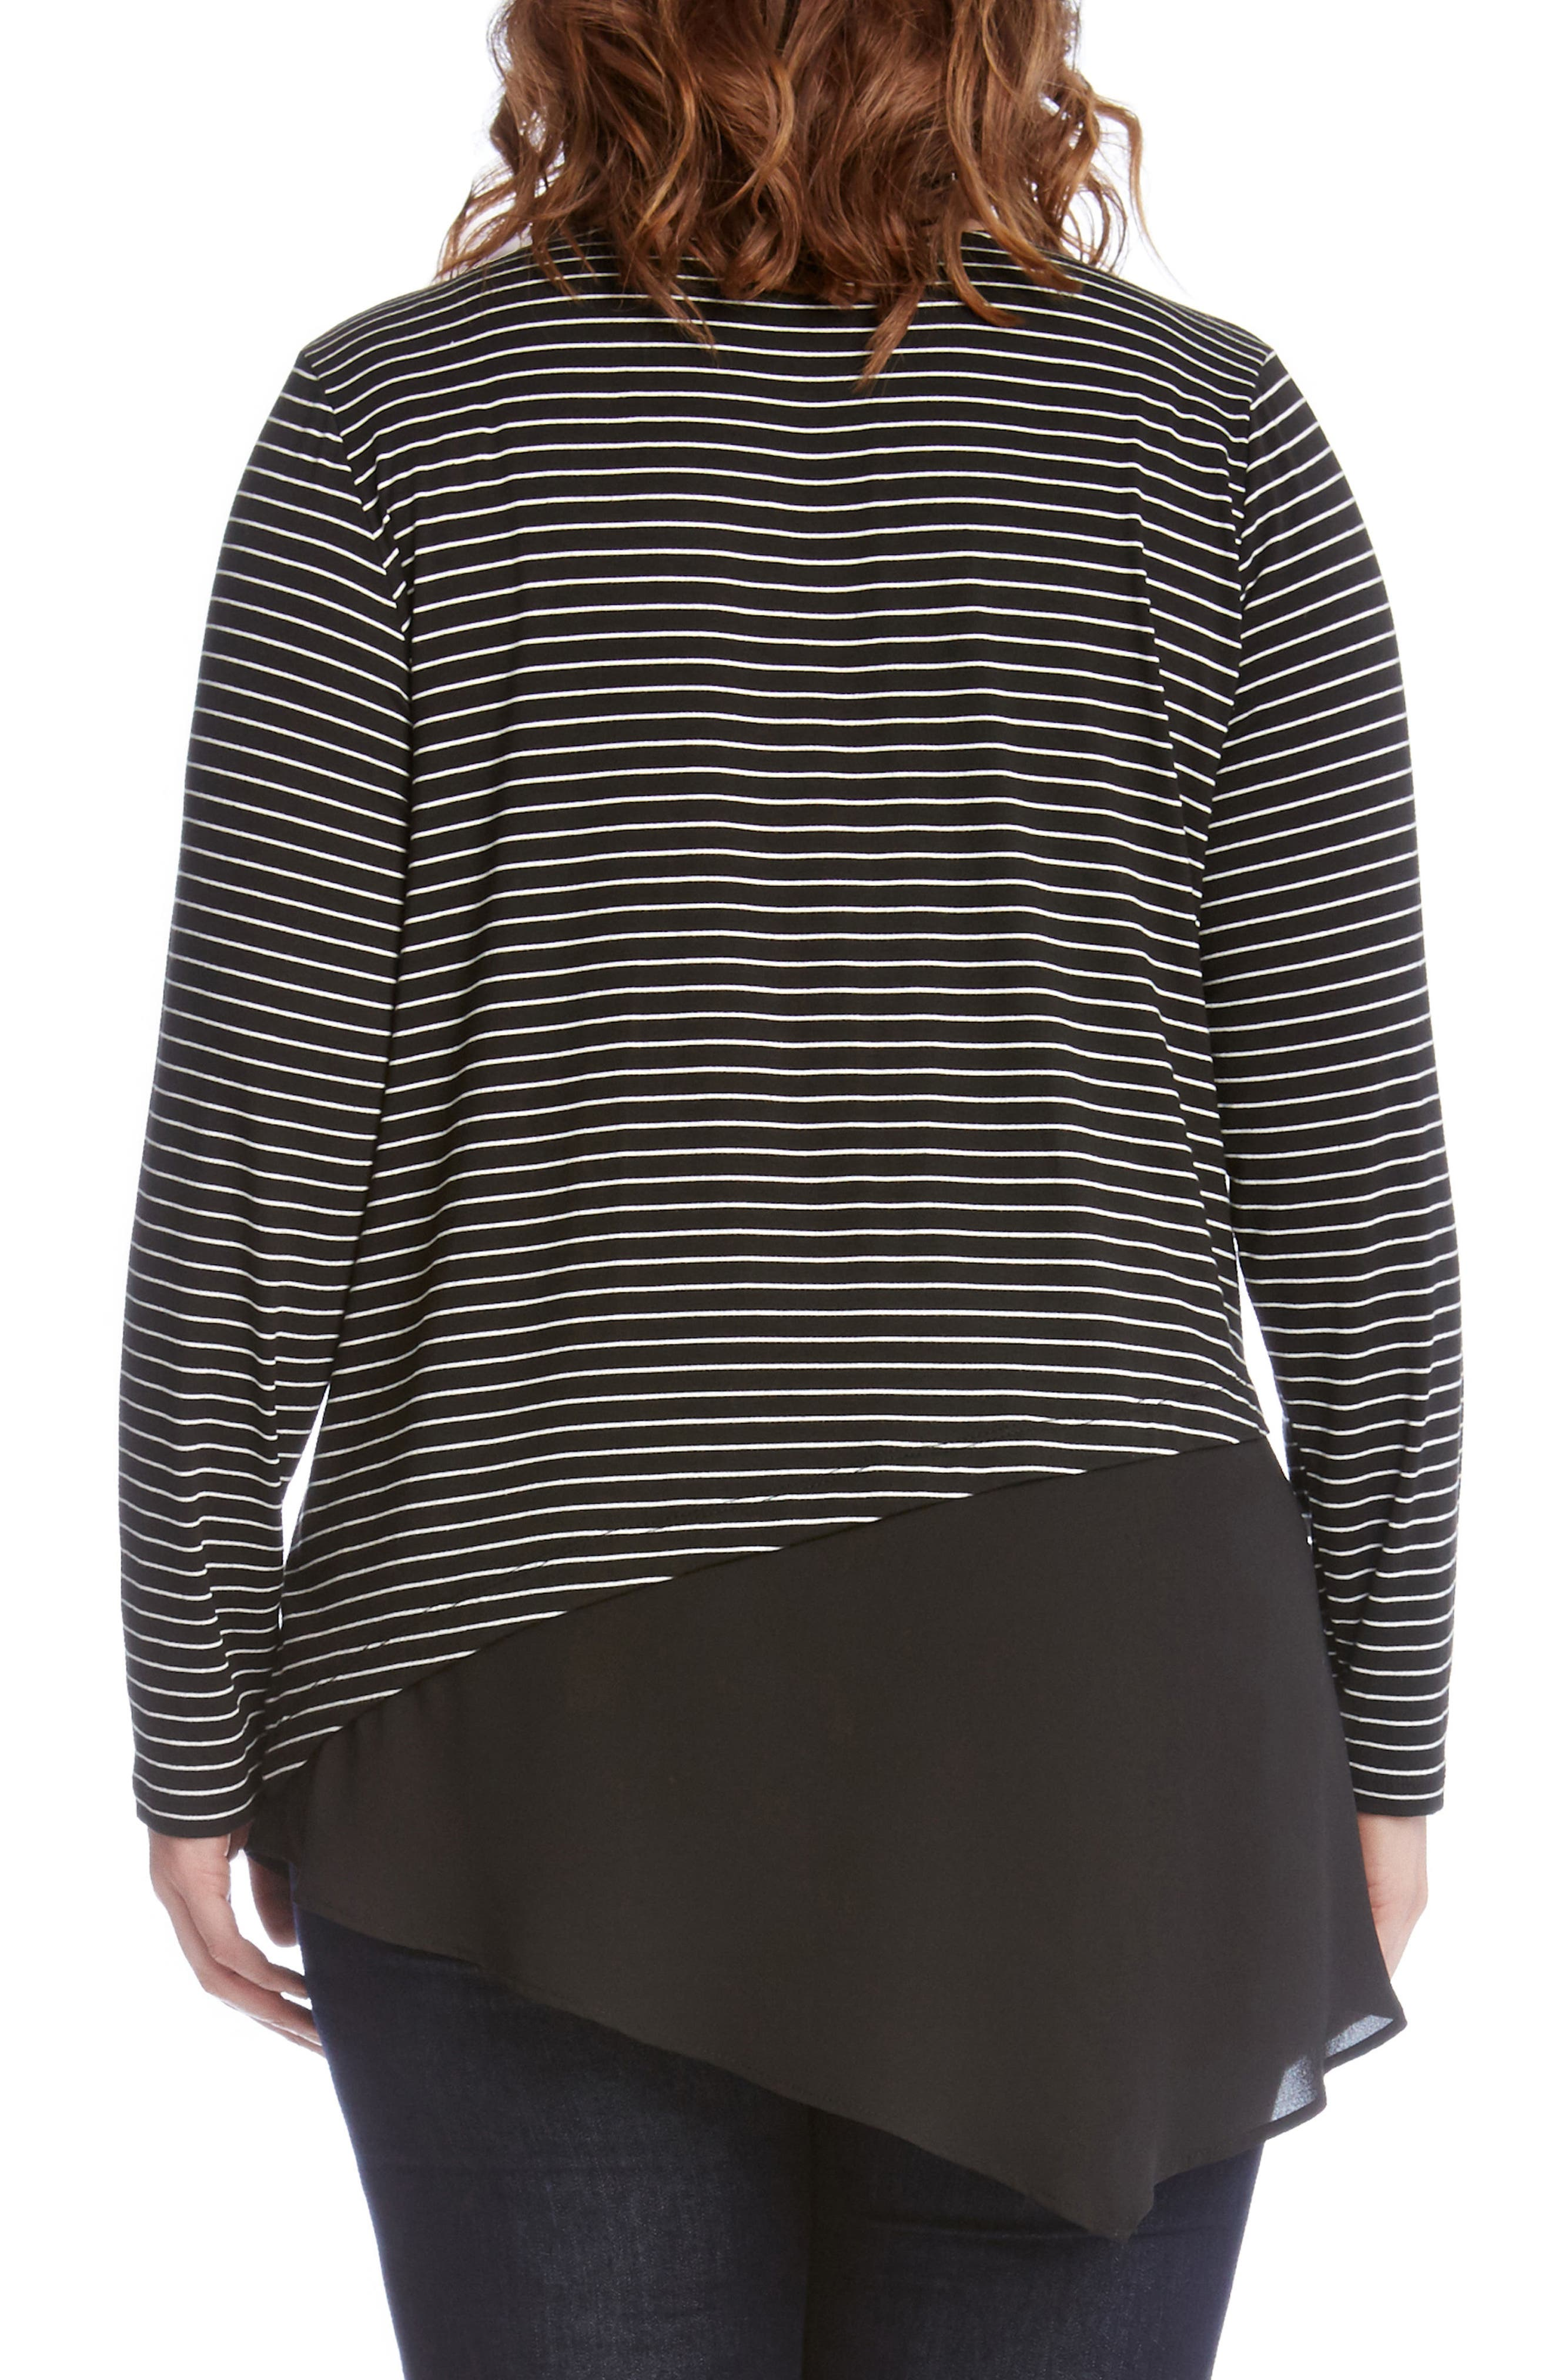 Alternate Image 2  - Karen Kane Asymmetrical Stripe Mixed Media Top (Plus Size)